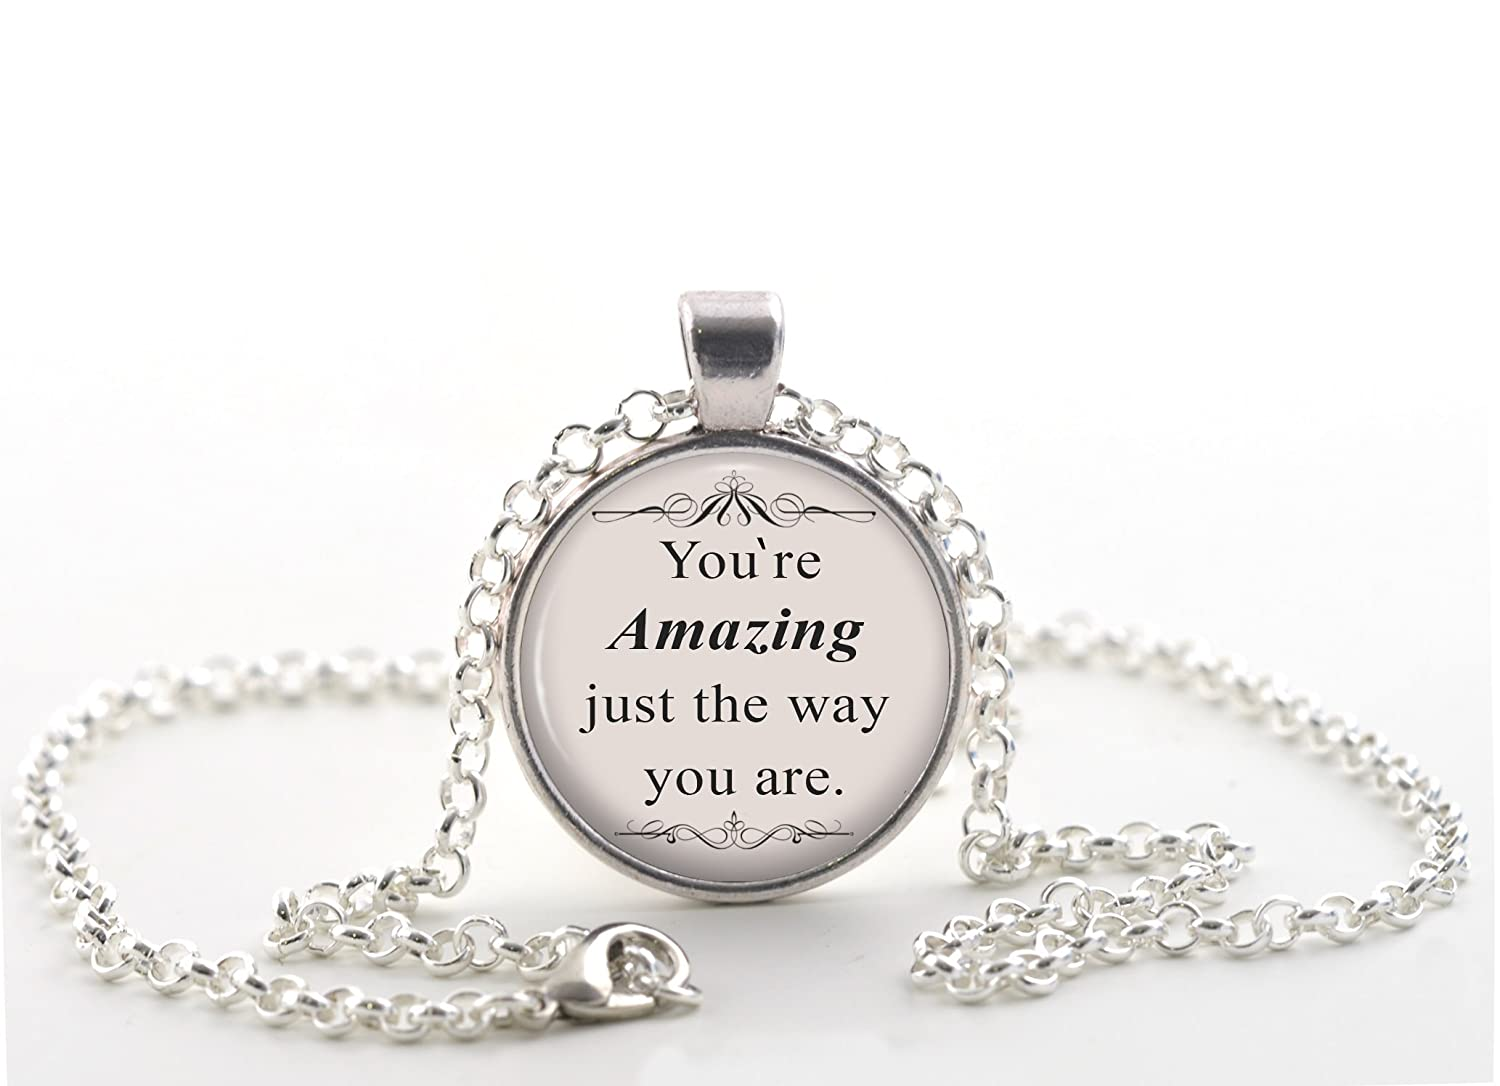 Bruno Mars Quote Necklace Silver Jewellery Gift Ideas For Friends Just The Way You Are Music